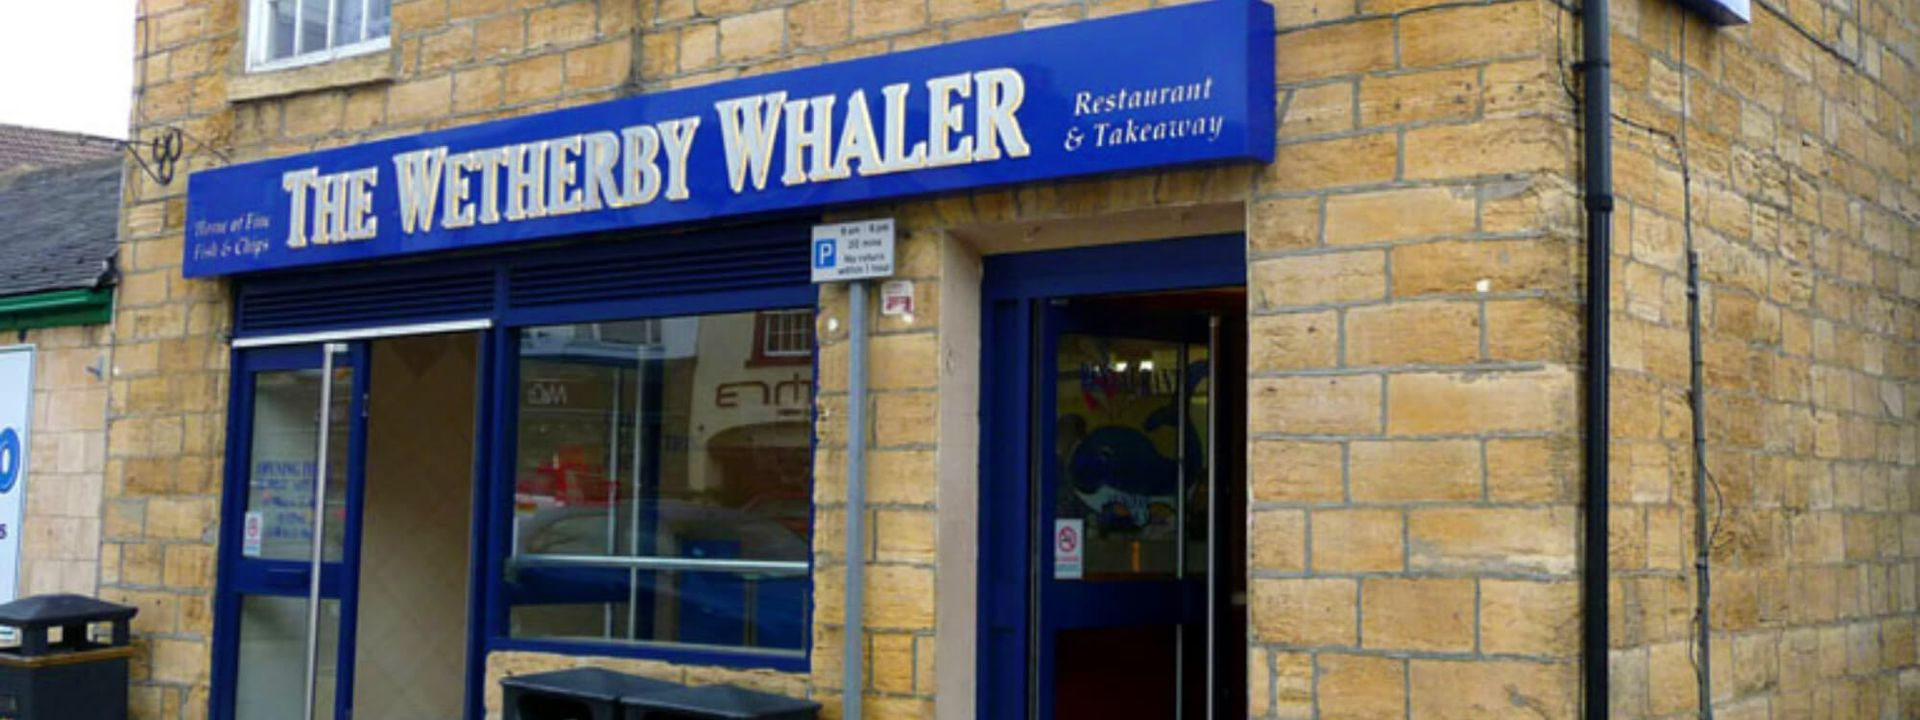 The Wetherby Whaler in Wetherby